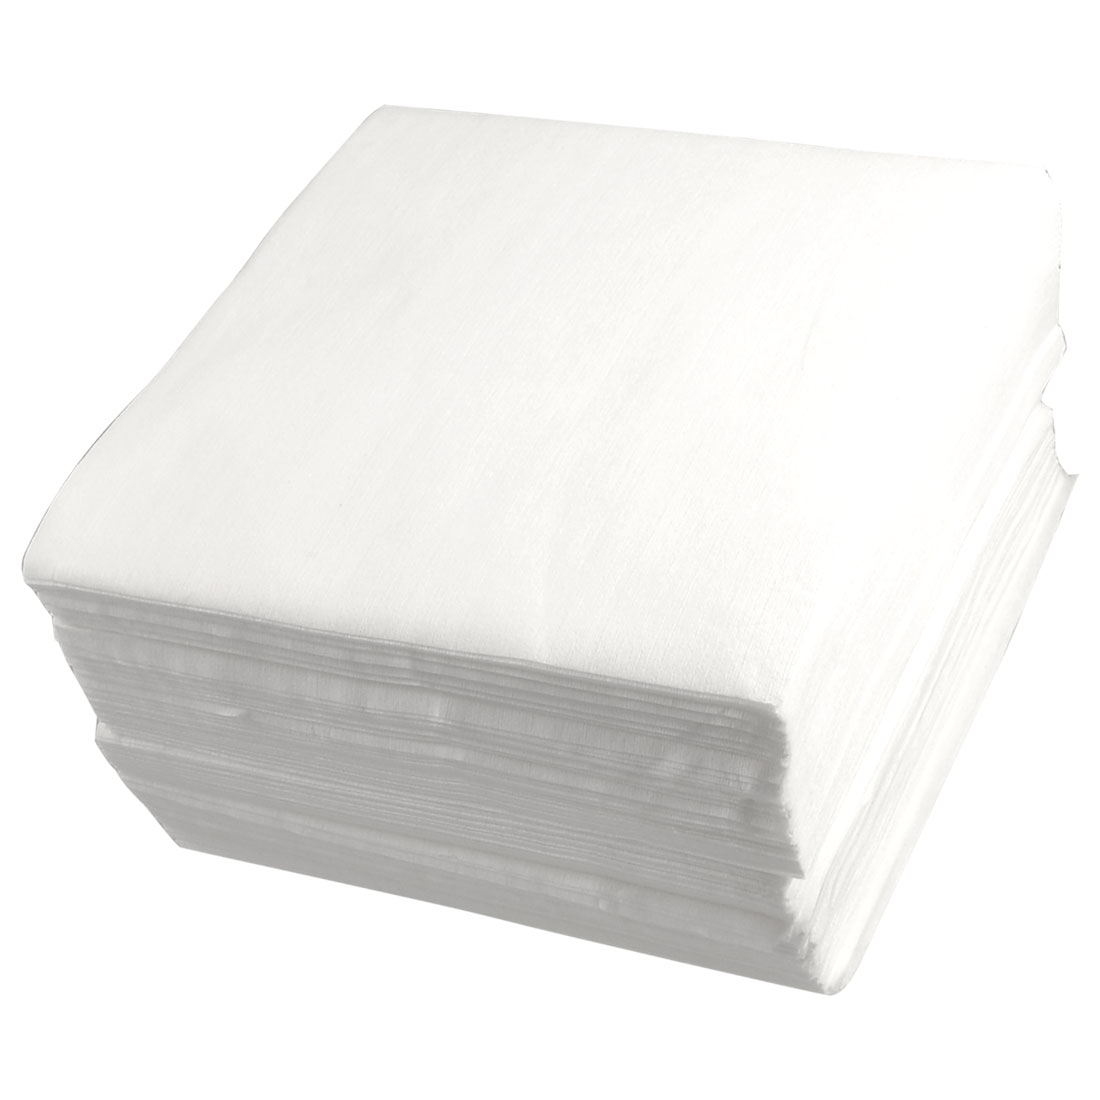 "White 6"" x 6"" Polyester Non-woven Clean Cleanroom Wipers 300 Pcs"